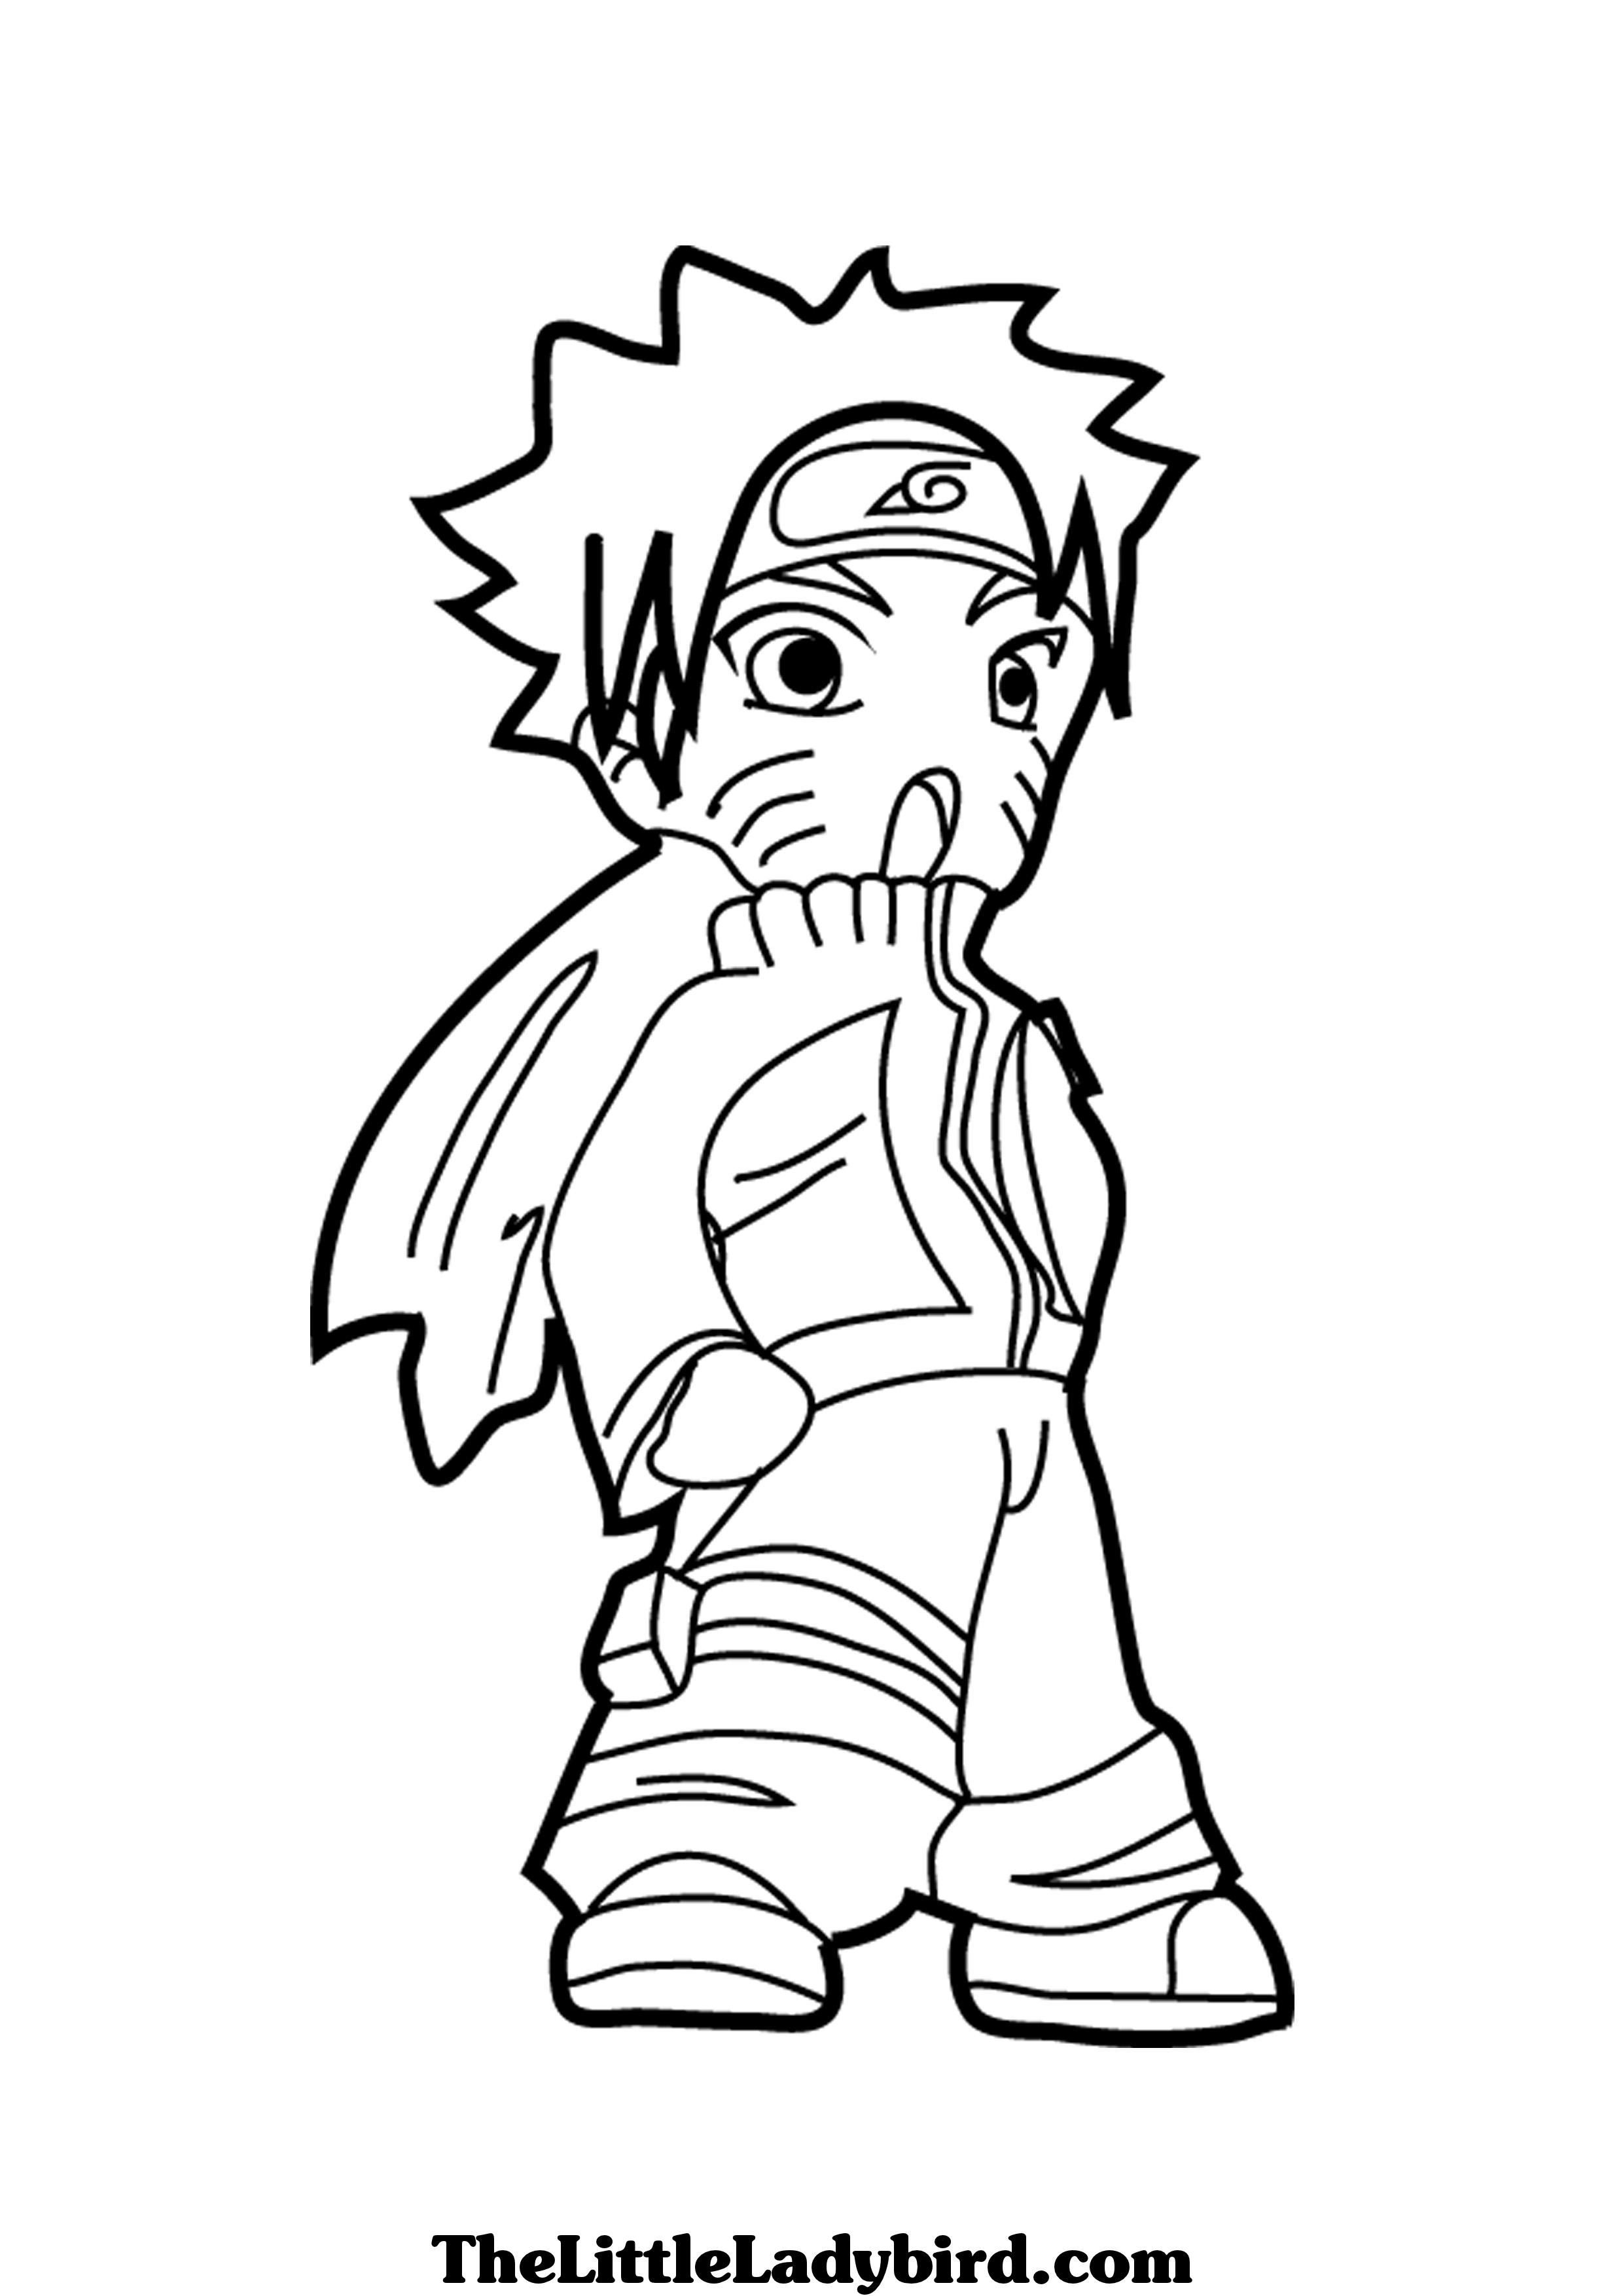 Anime Naruto Coloring Pages Free Anime Naruto Coloring Page Thelittleladybird